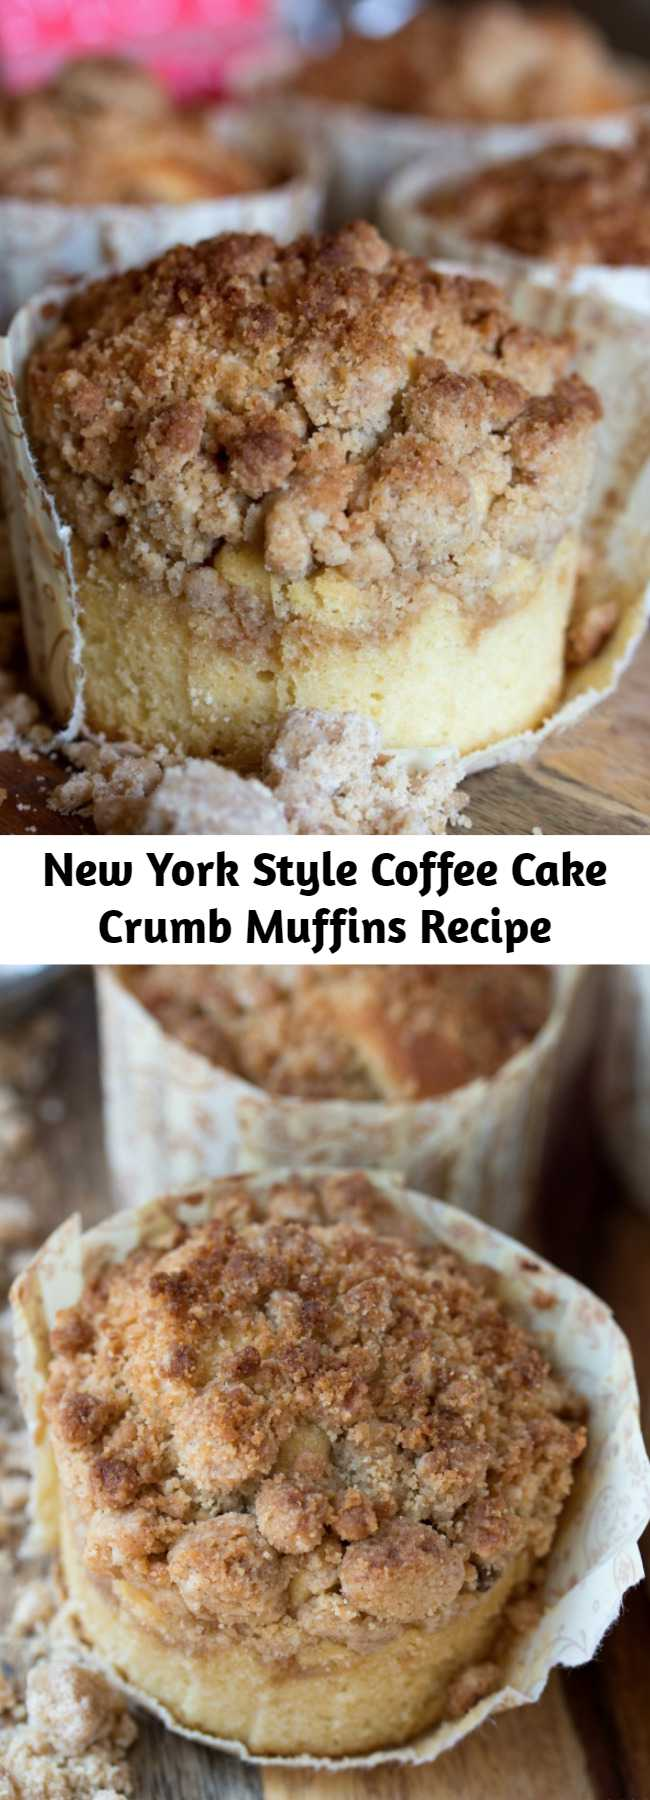 New York Style Coffee Cake Crumb Muffins Recipe - If there is crumb in the name for crumb muffins, you better believe there should be a lot of crumb on top!